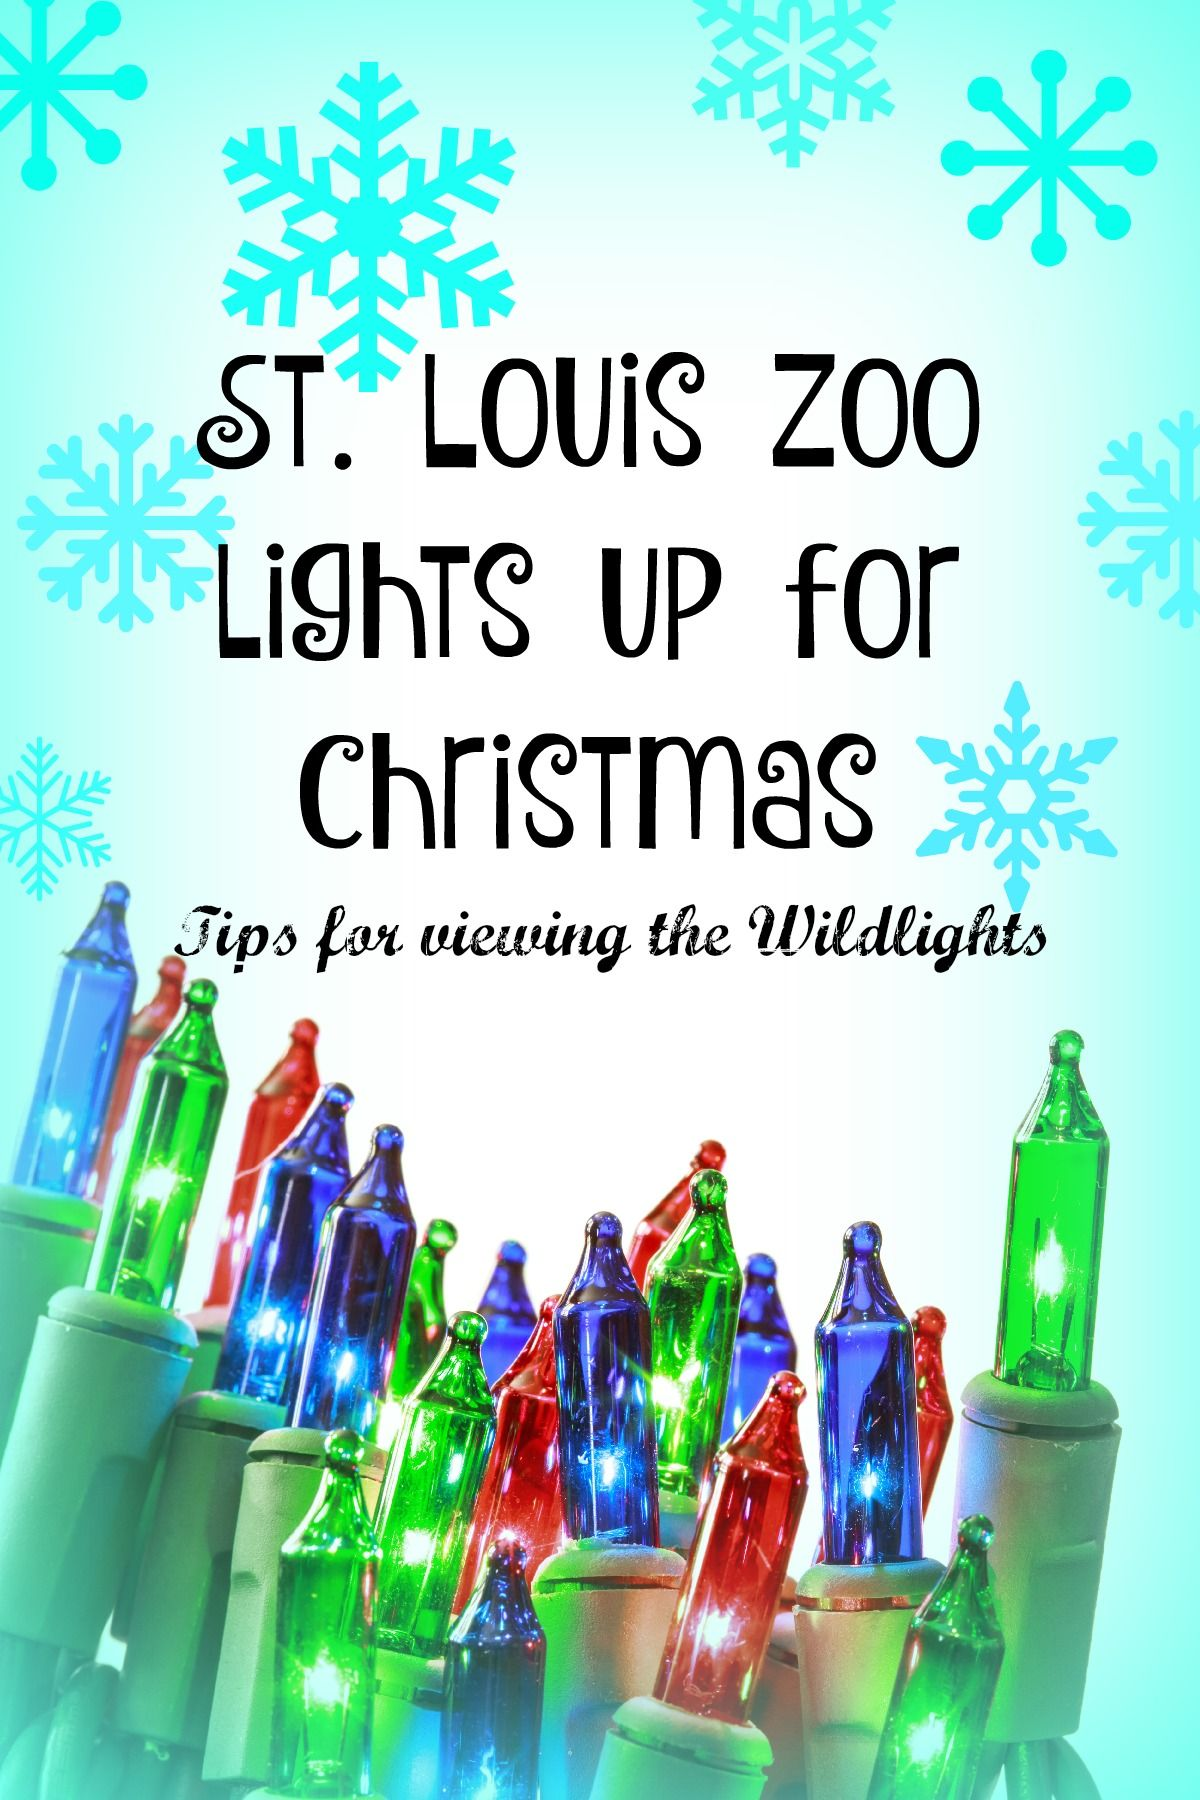 Wild Lights: St. Louis Zoo lights up for Christmas | St. Louis for ...